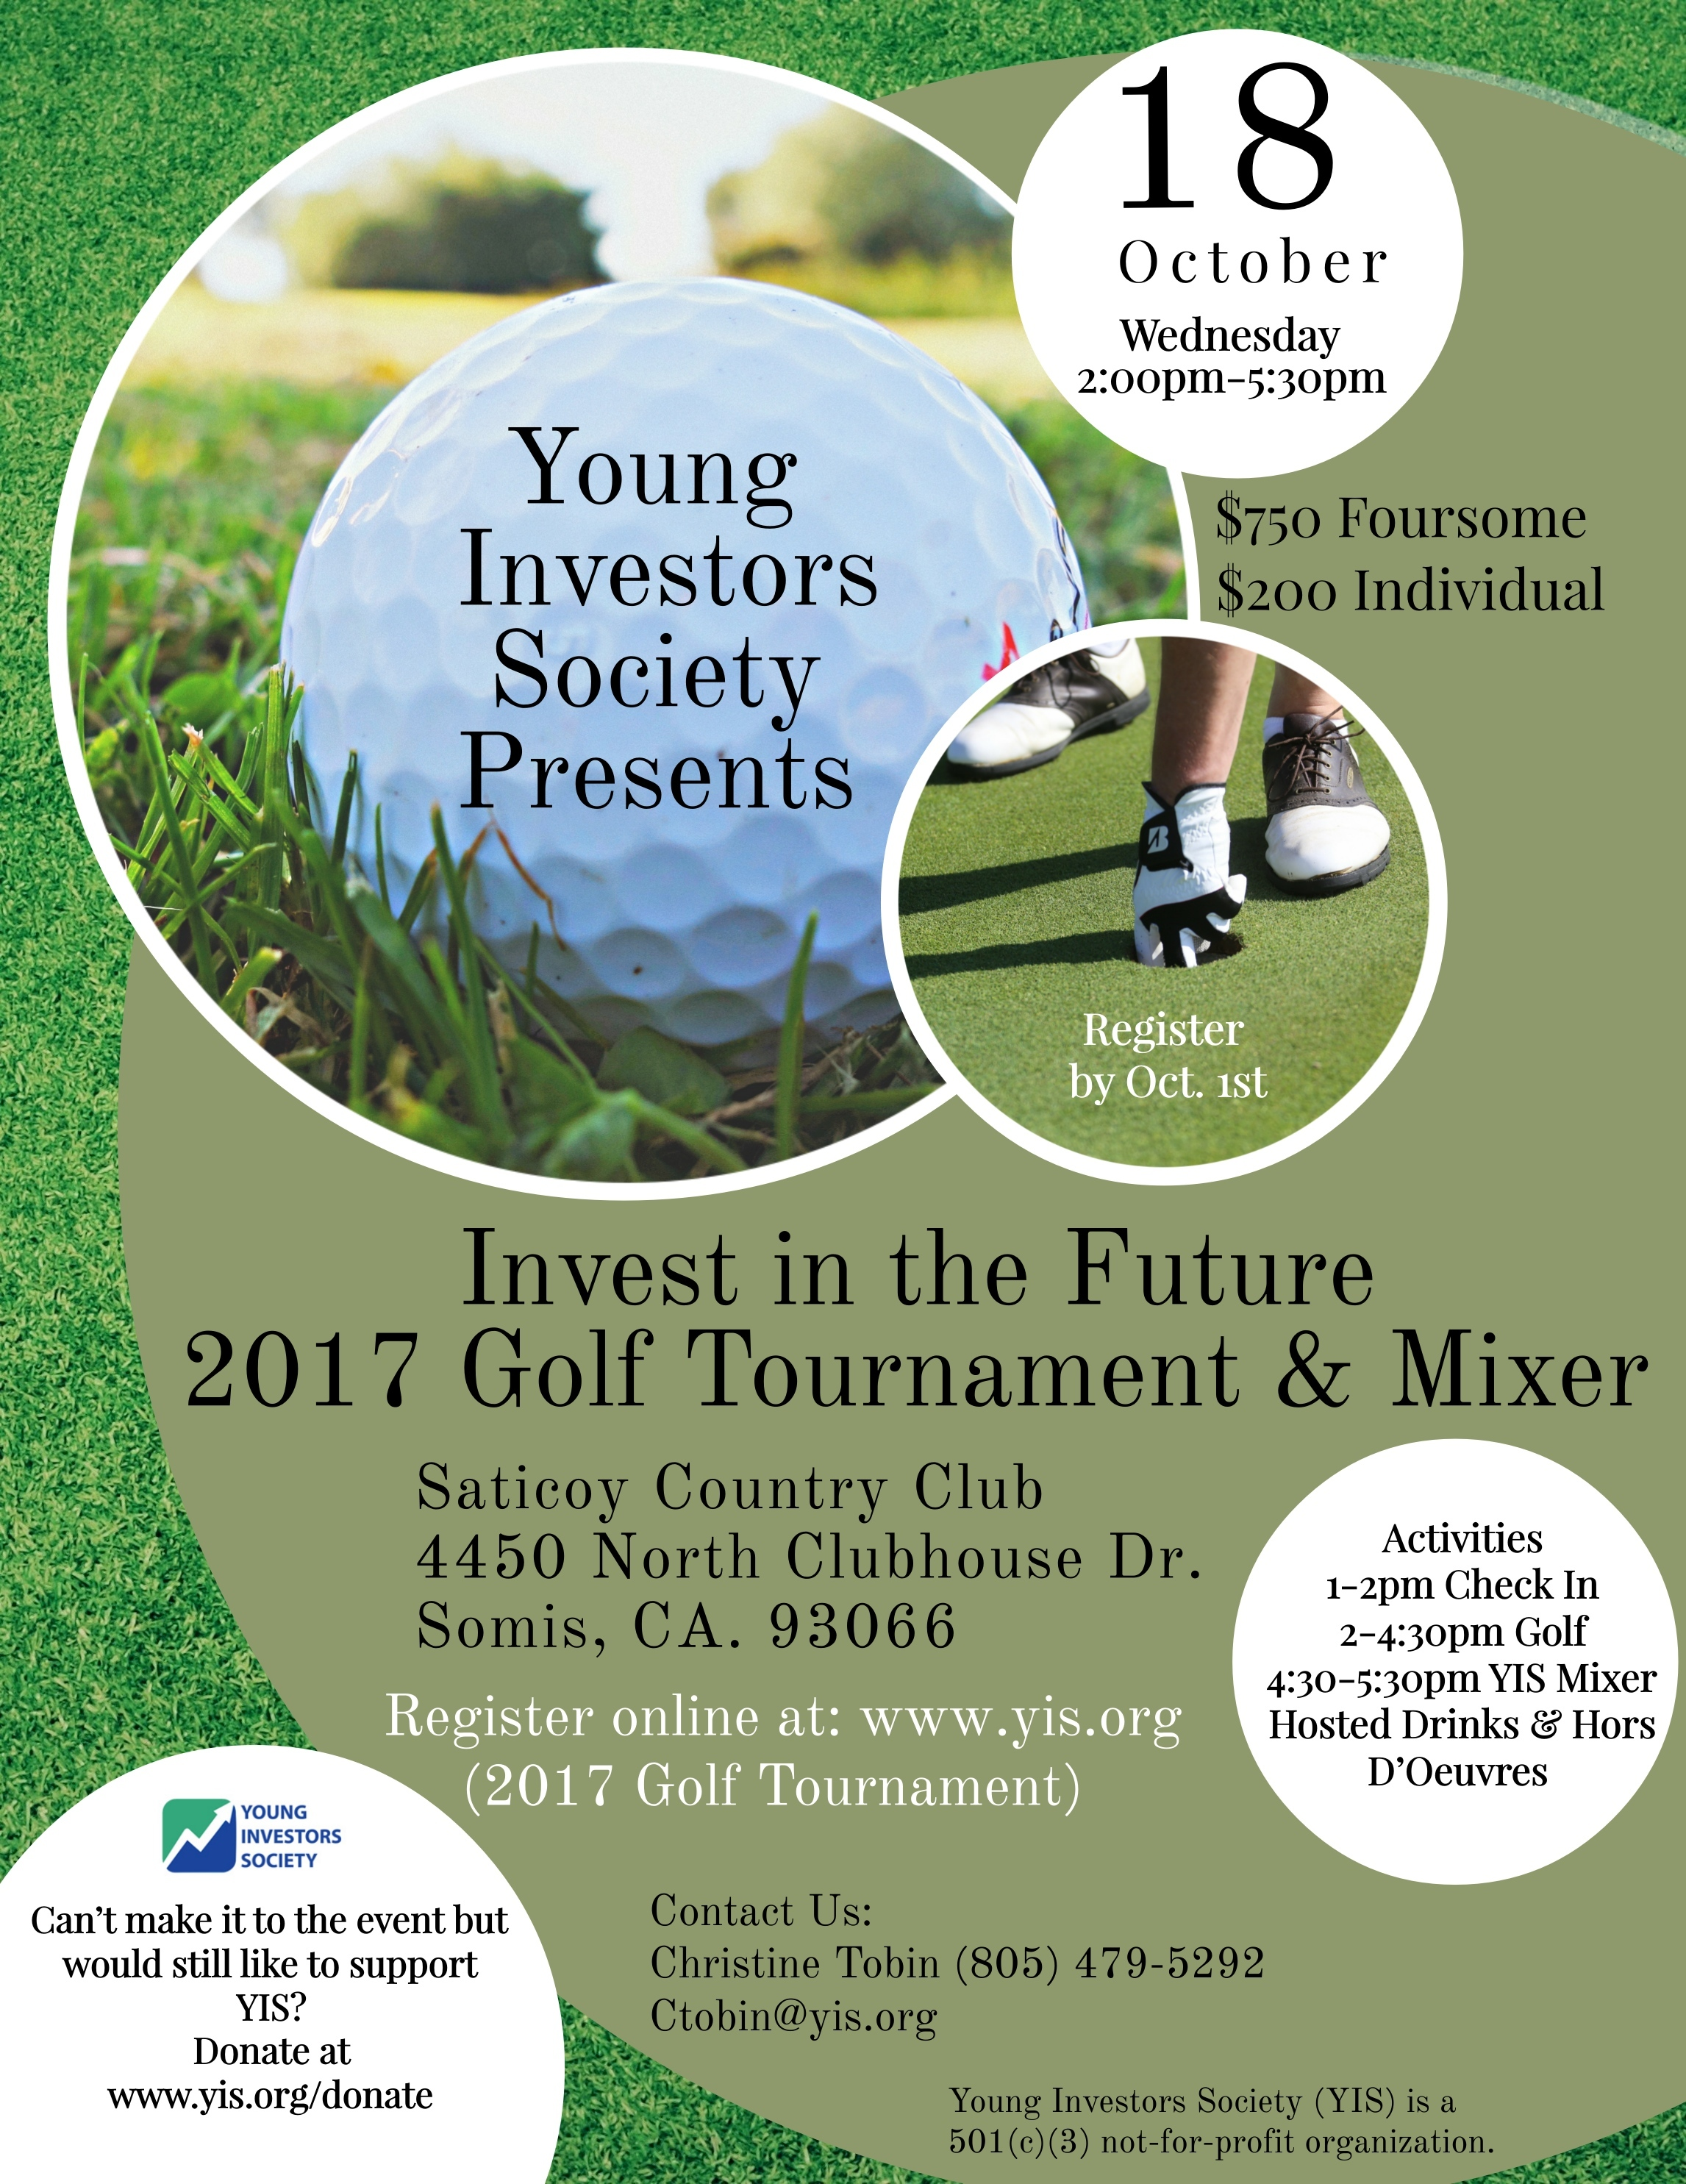 2017 Golf Tournament & Mixer